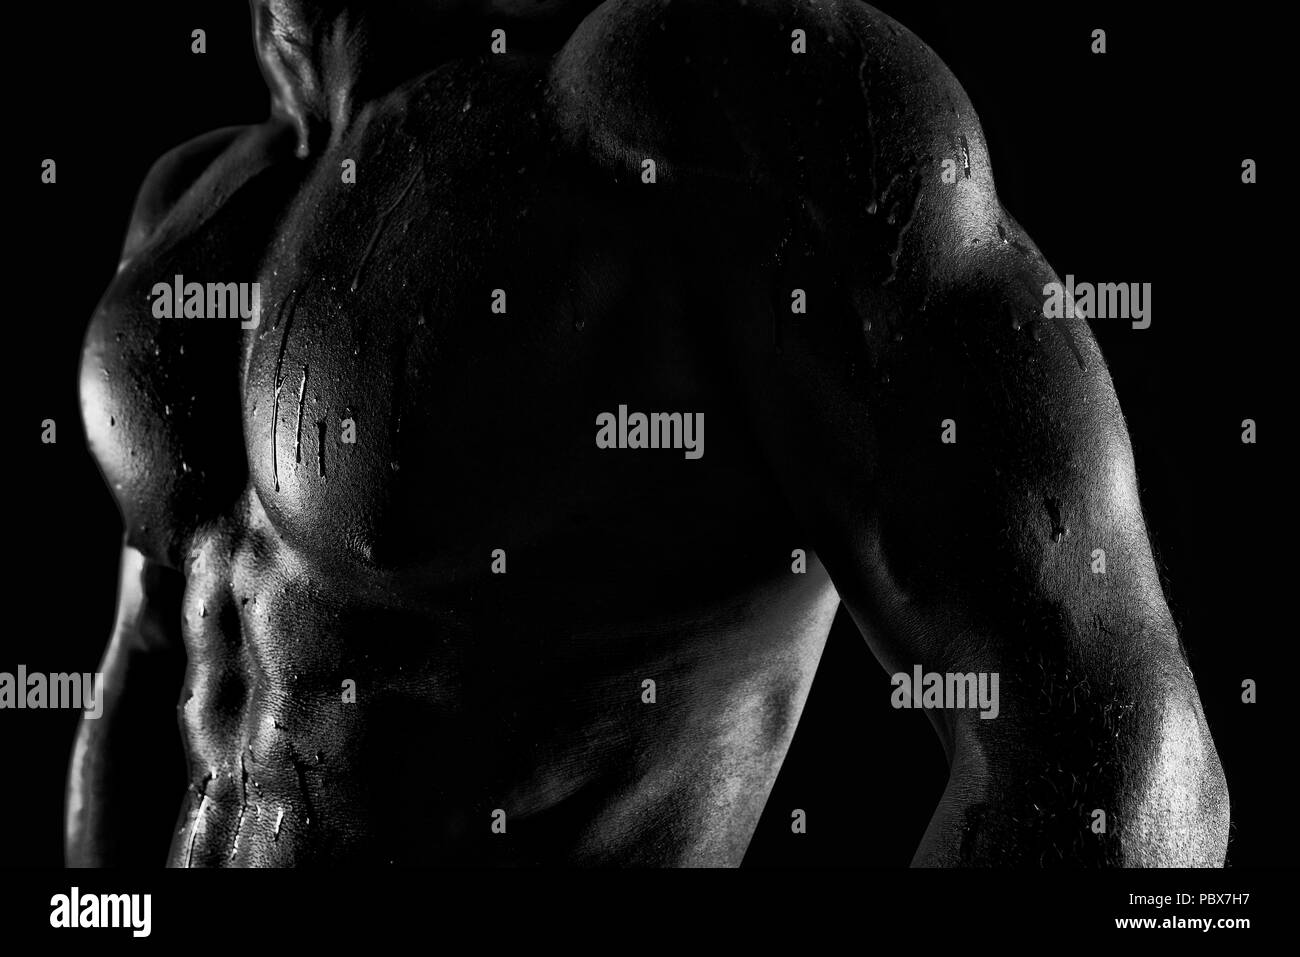 Muscular of a body building trainer man - Stock Image